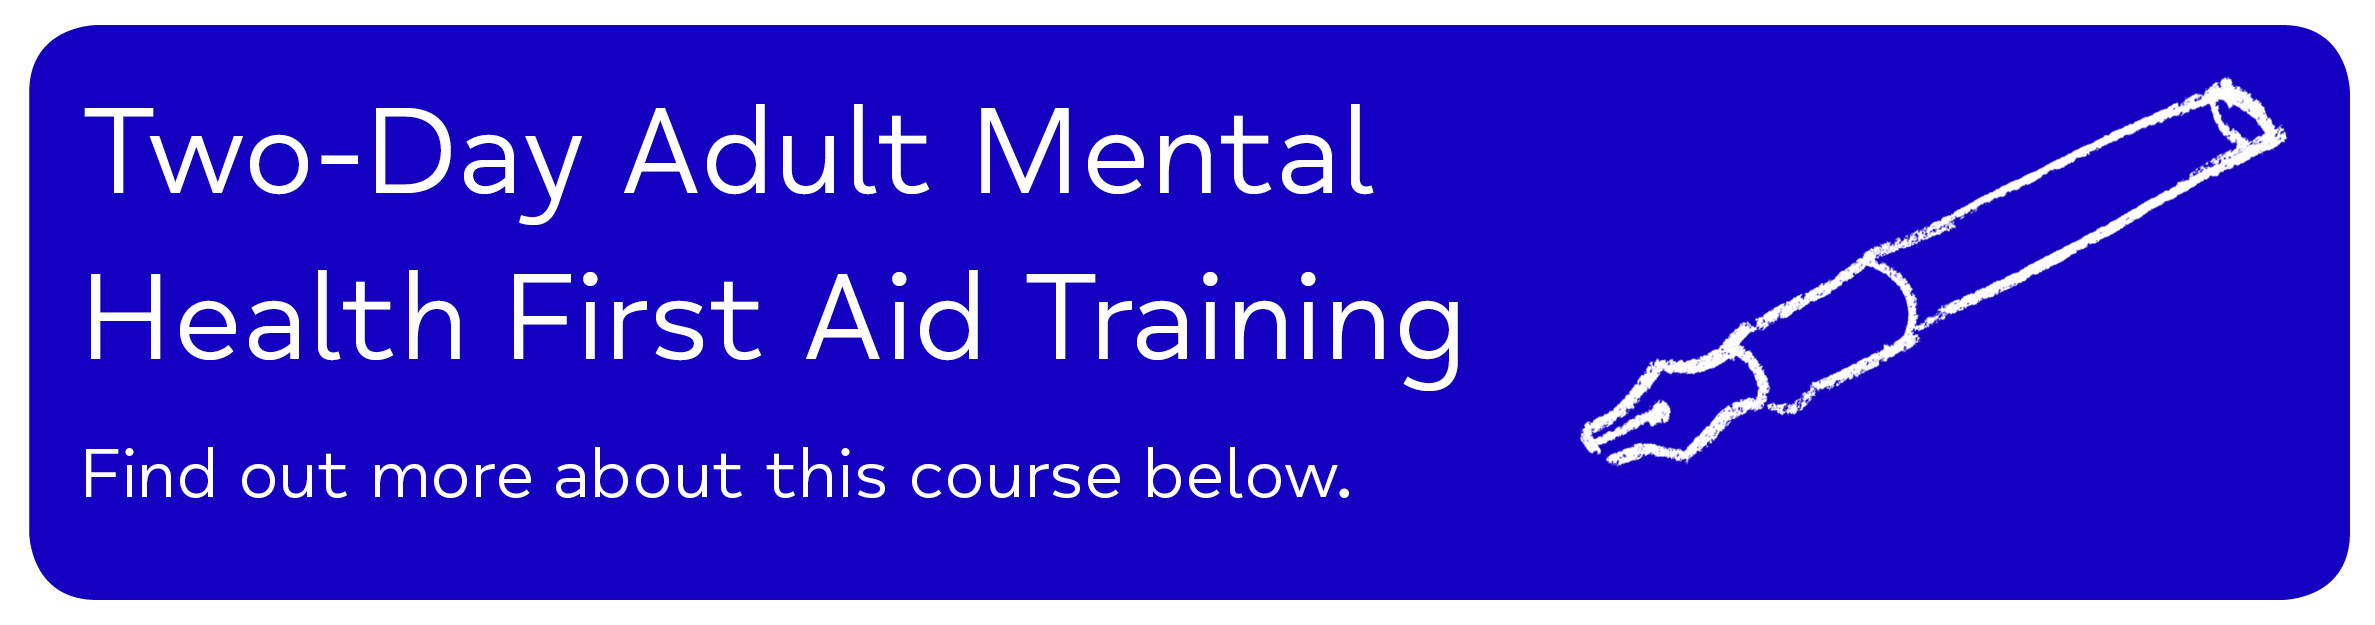 Two-Day Adult Mental Health First Aid - Two-Day Adult Mental Health First Aid Training Find out more about this course below.